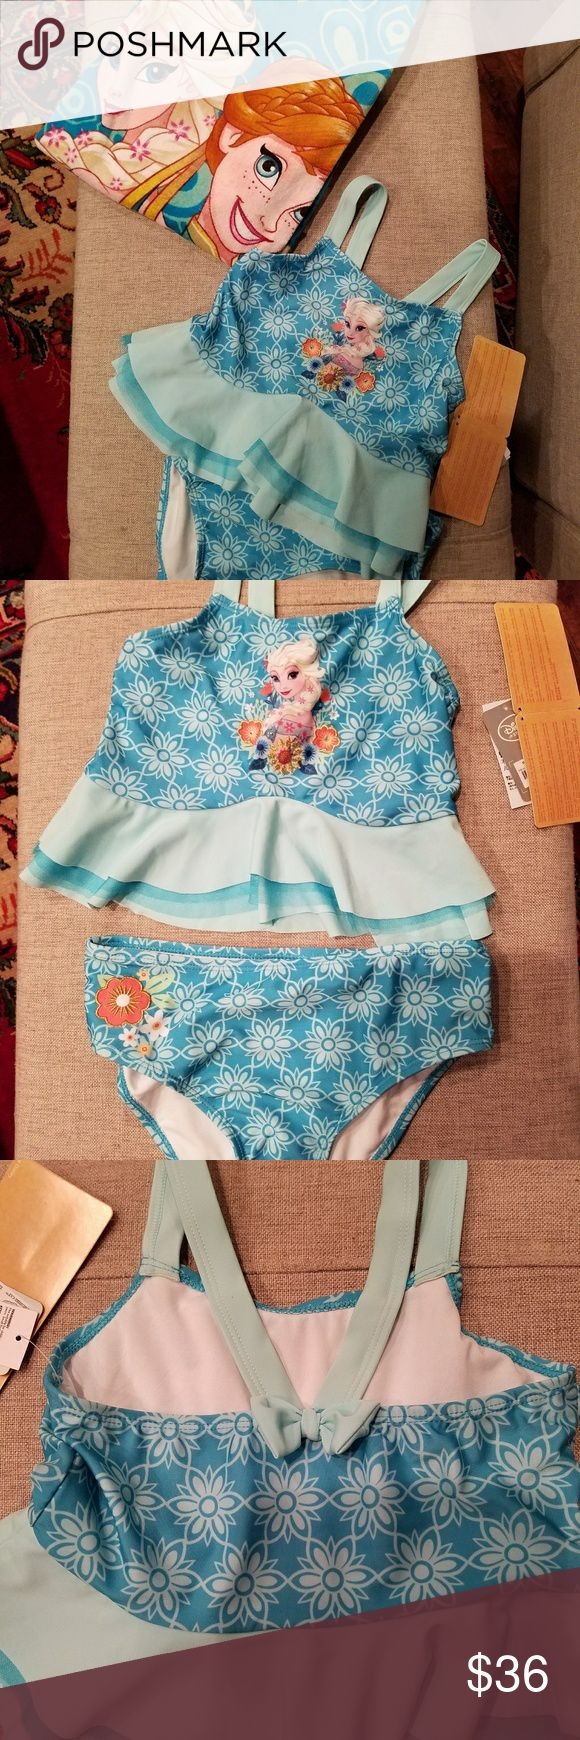 Frozen Beach towel and 2 pc swimsuit 9/10 All NWT!  You get all of this----- Frozen large beach towel and 2 pc. Frozen Bathing Suit in size 9/10 girls.  Great for Easter basket, birthday gift etc.  Suit has UPF50+ on label. Disney Swim Bikinis